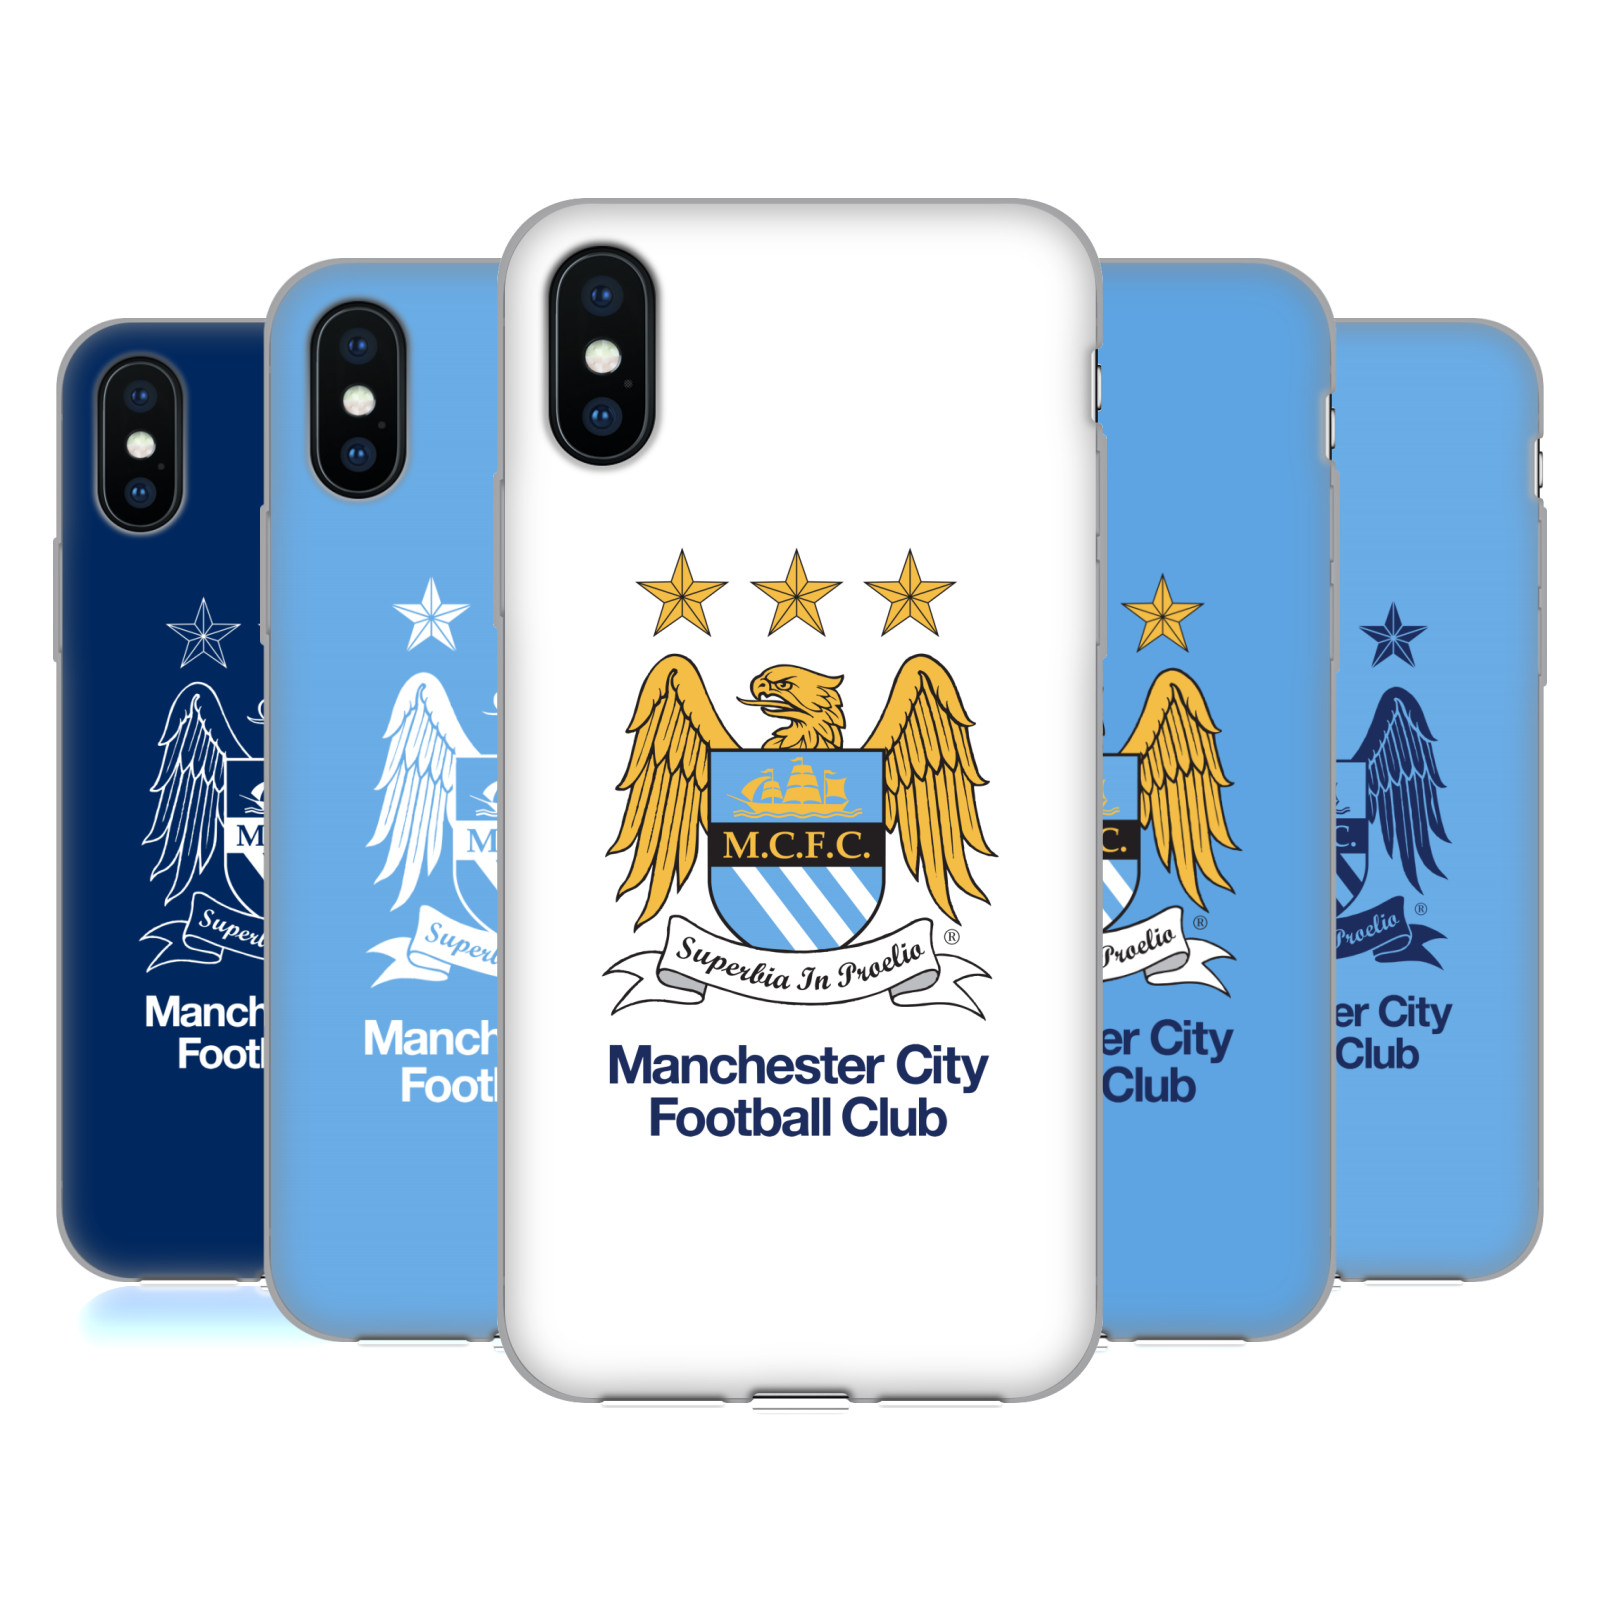 Manchester City Man City FC <!--translate-lineup-->Crest<!--translate-lineup-->